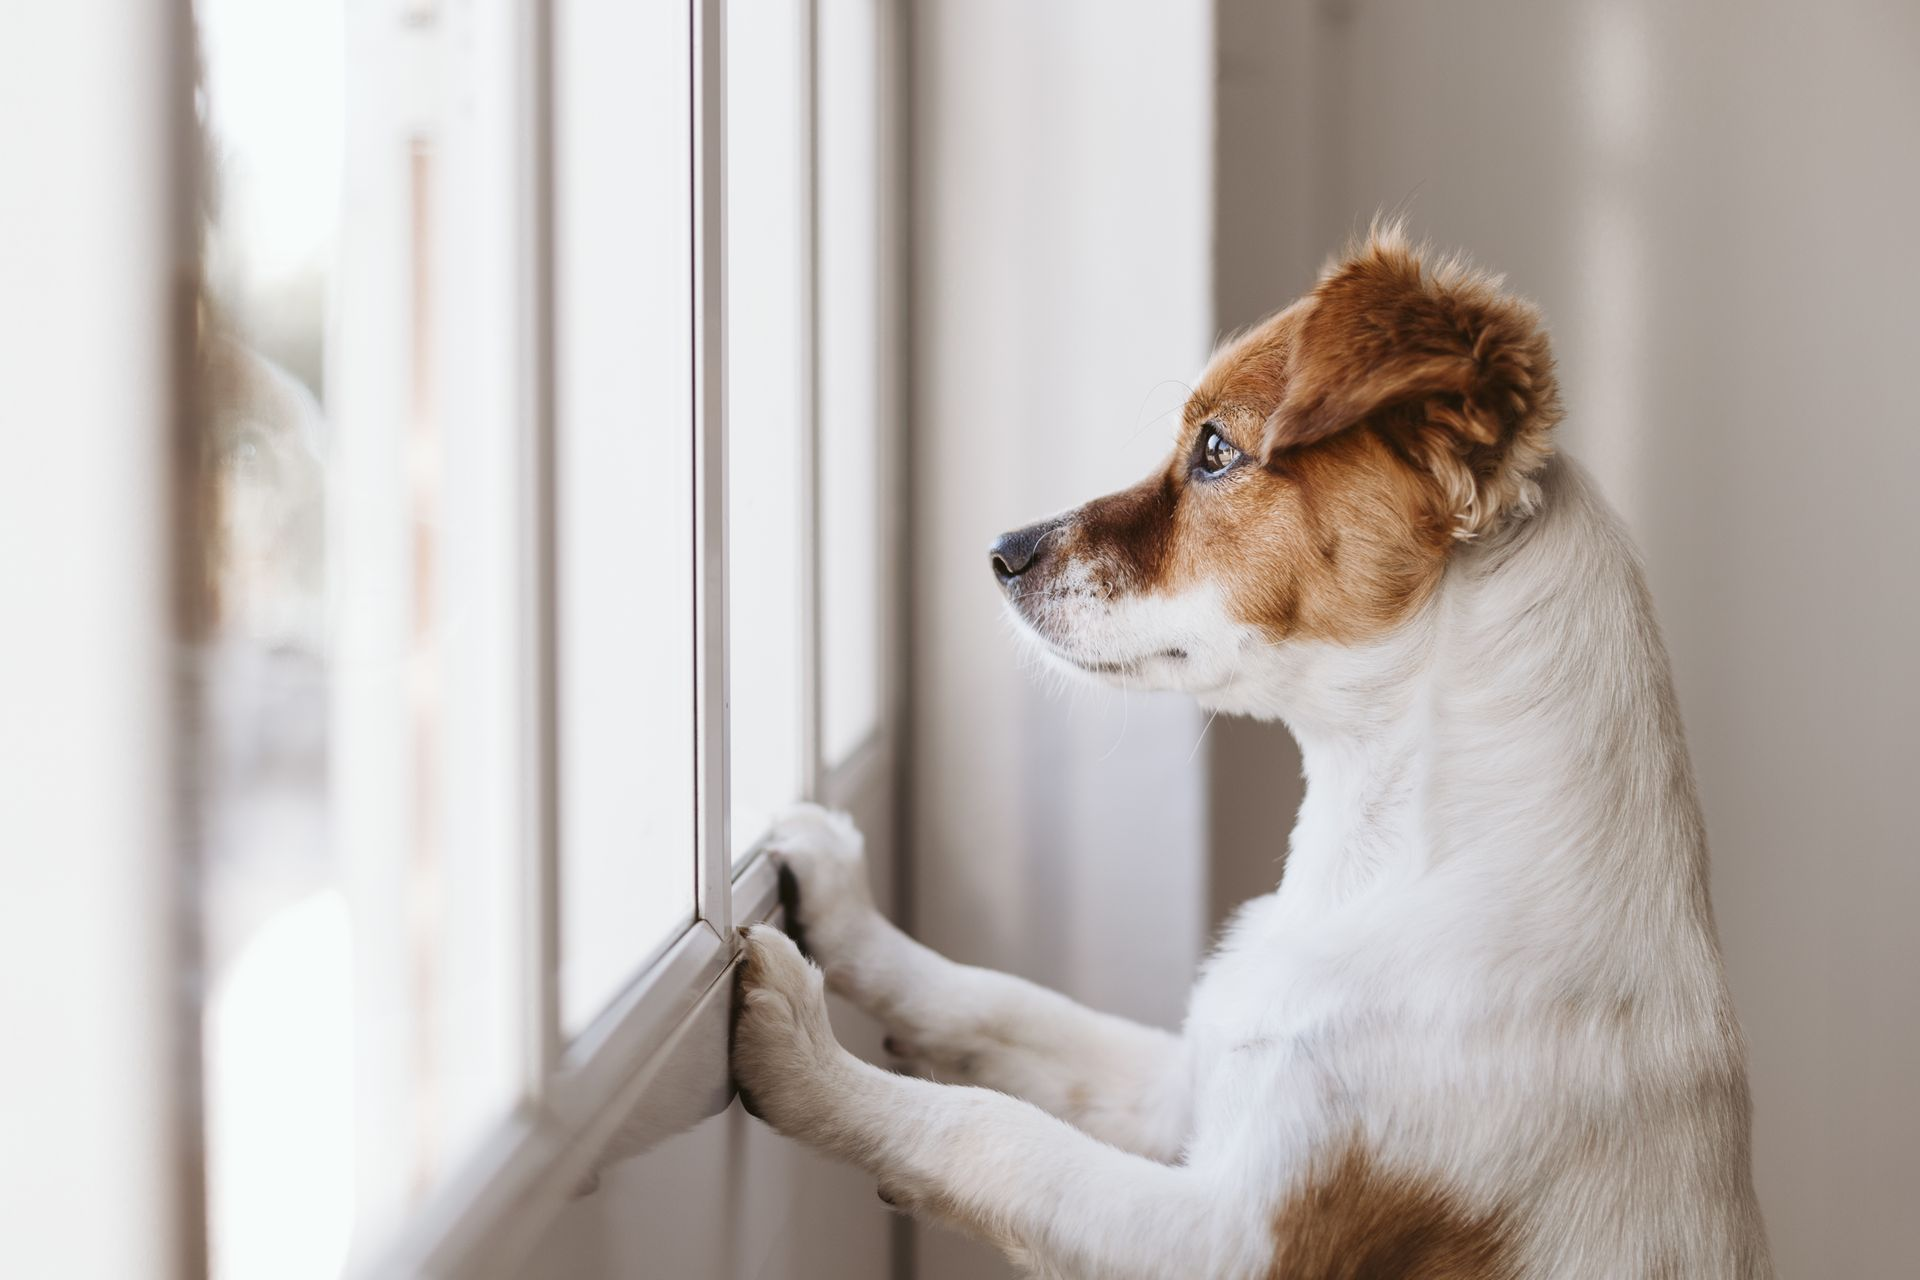 A brown and white dog stares out the window.